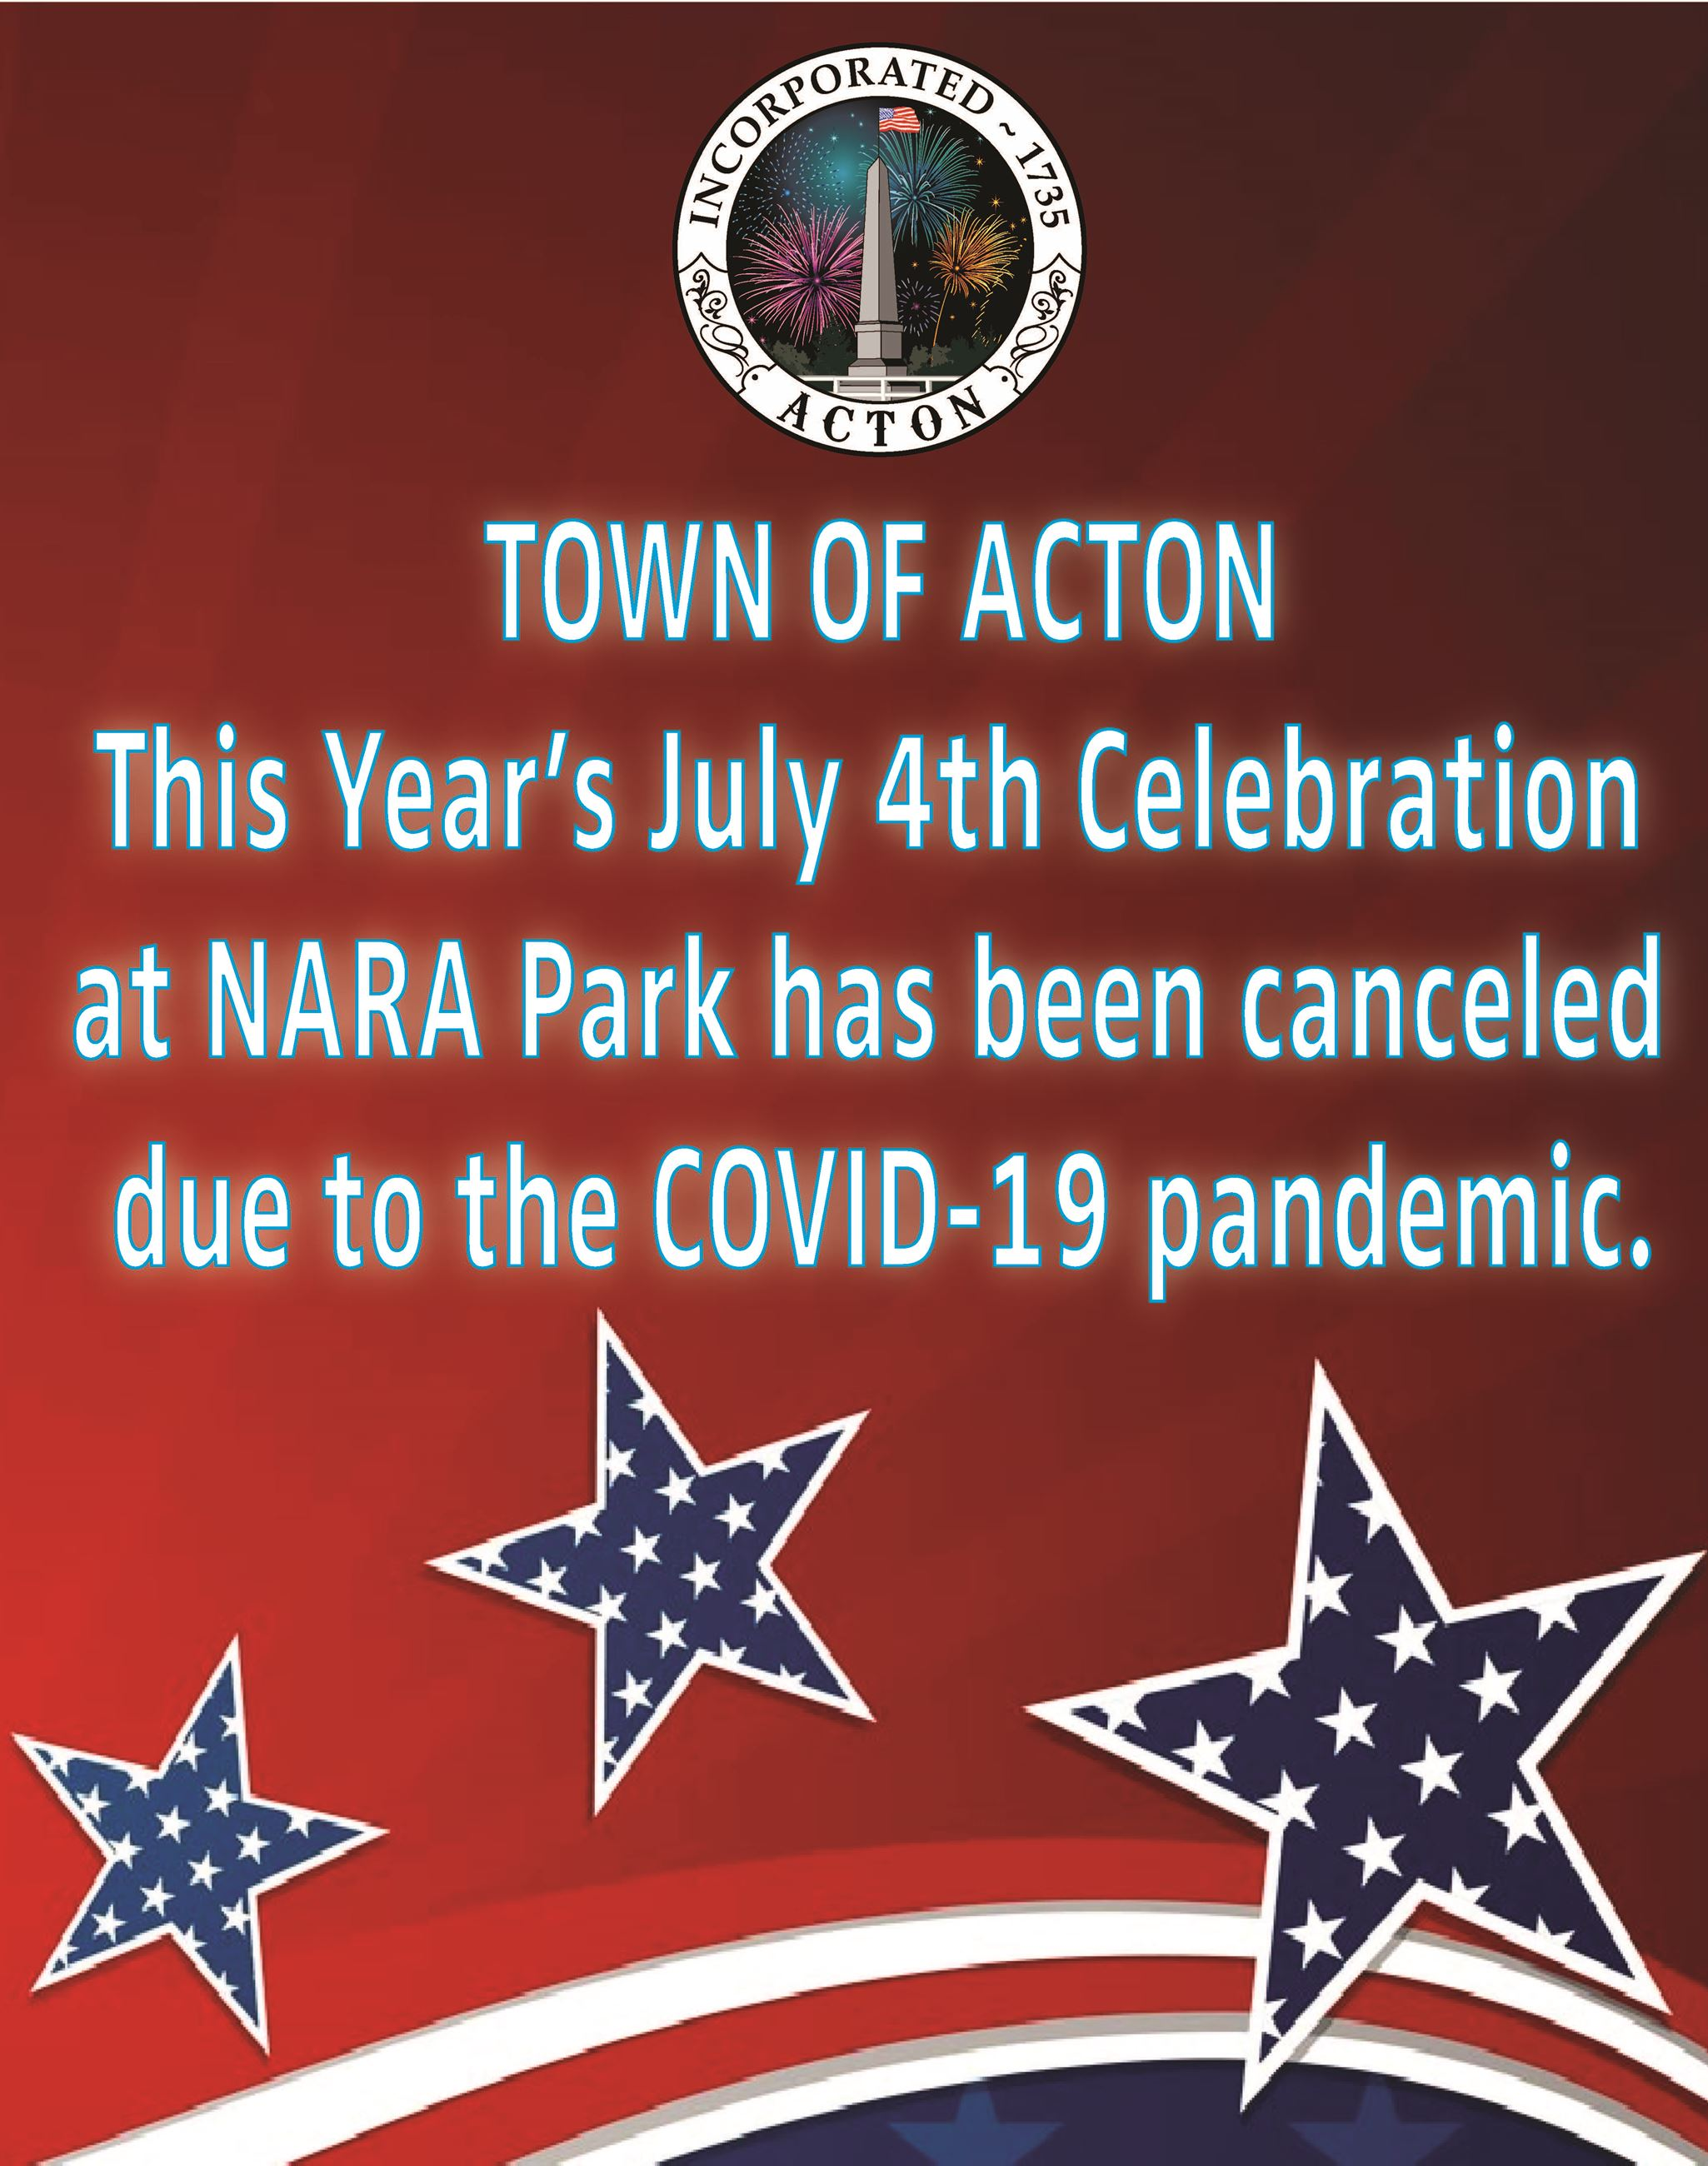 July 4th cancellation